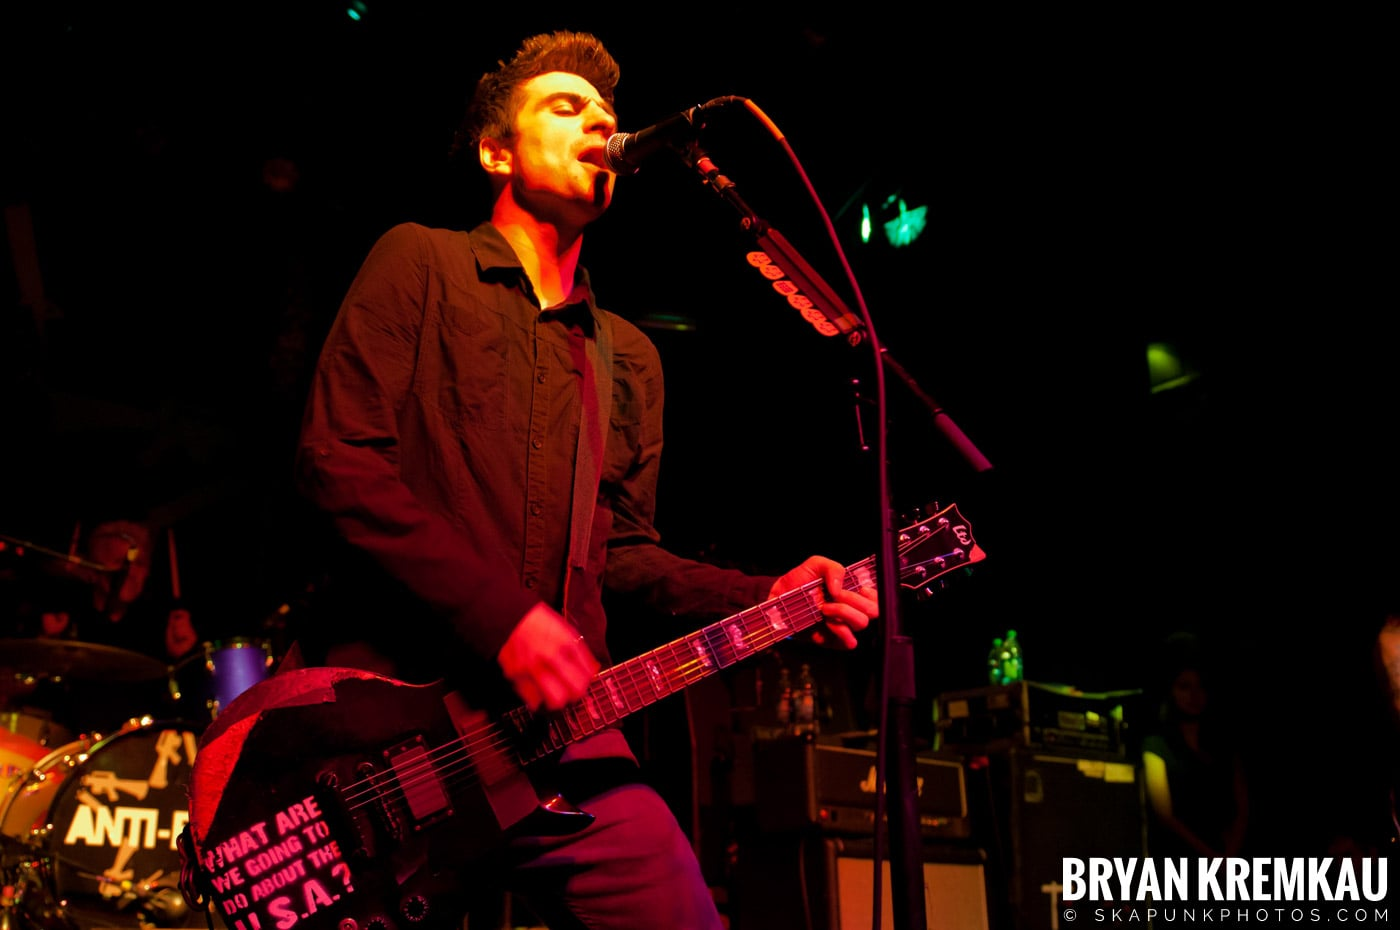 Anti-Flag @ Irving Plaza, NYC - 10.8.11 (10)